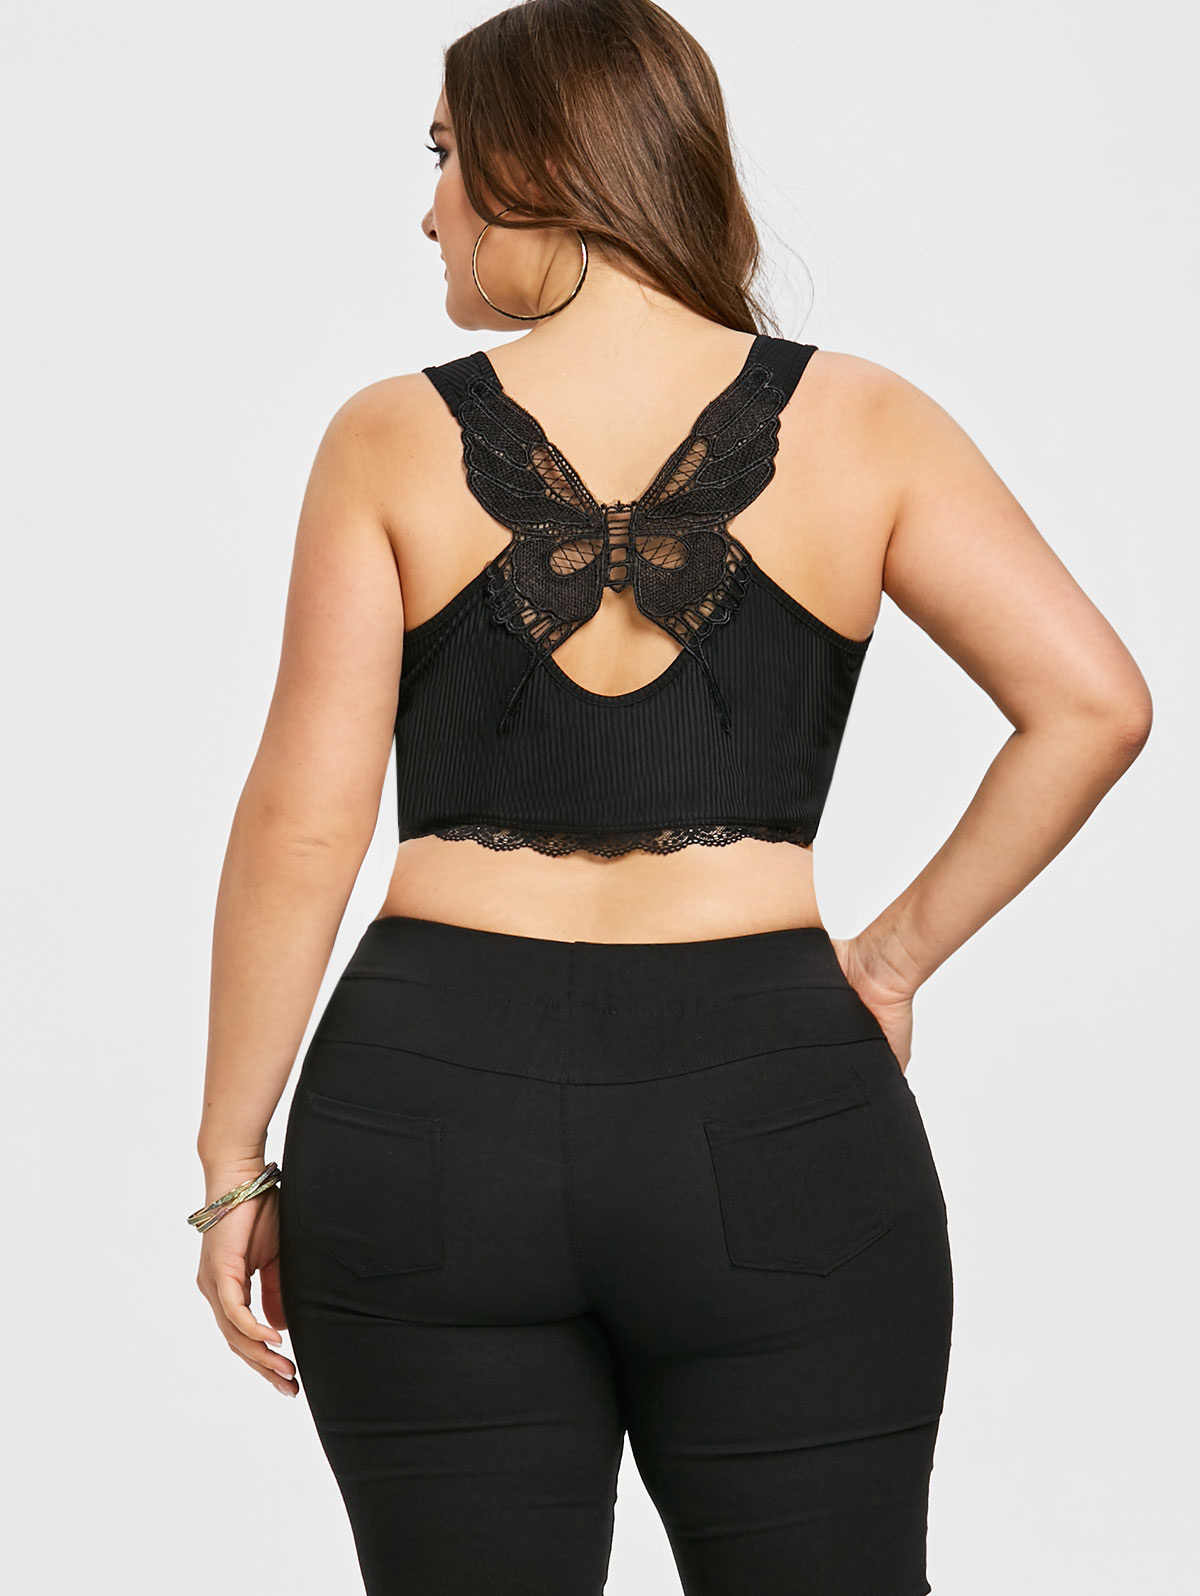 b7f4ce15ed9 Gamiss Women Plus Size 5XL Butterfly Appliqued Crop U Neck Tank Top Summer  Fashion Sleeveless Lace Trim Crop Tops Big Size Tops